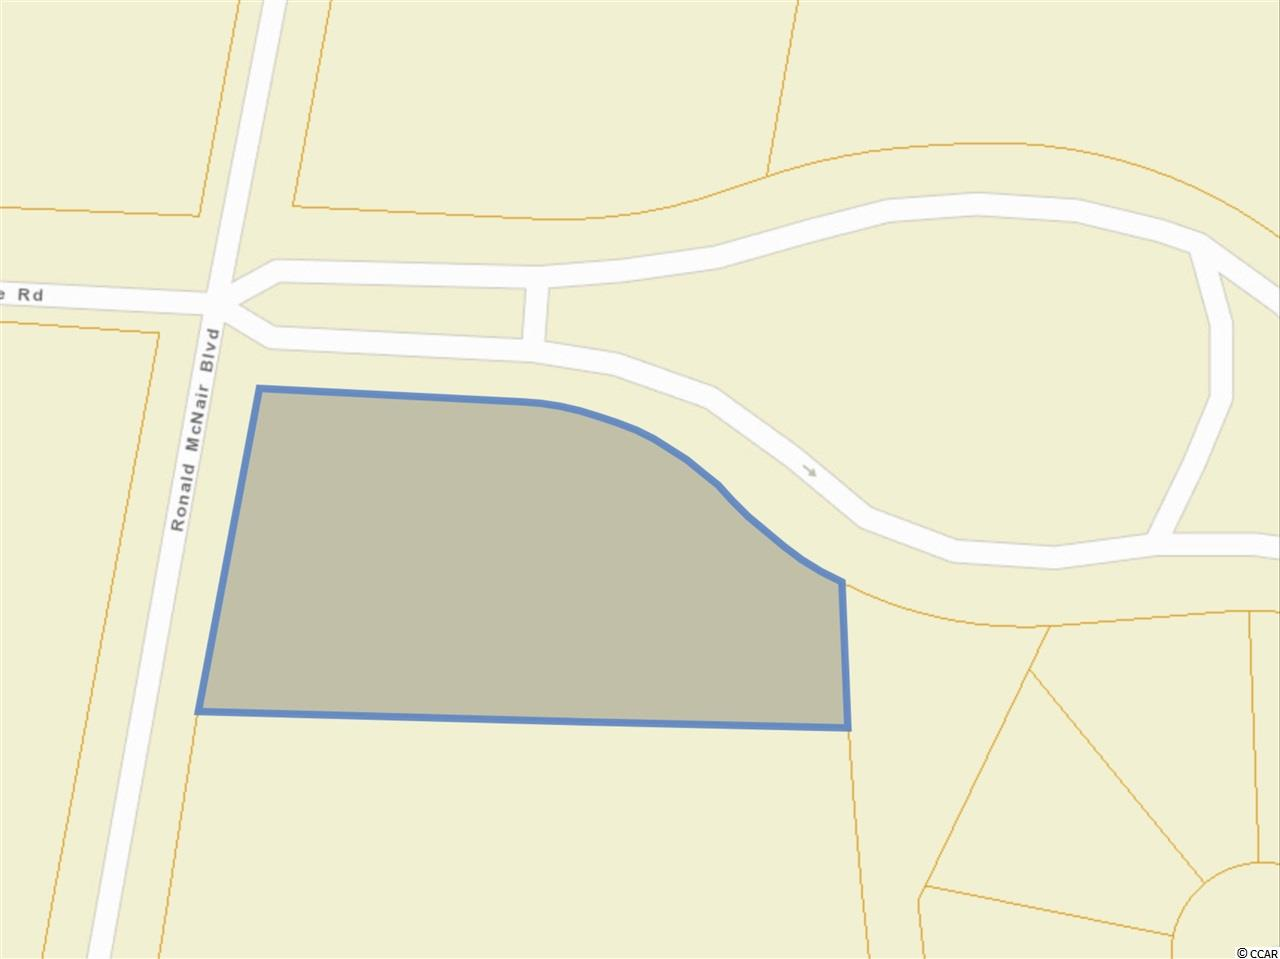 Prime 1.2 acre Highway Commercial lot in high traffic area at the entry to new Bella Vita Development Homes by Beazer.  And the Pine Island subdivision is ready to break ground.  Minutes to the Tanger Outlets.    Great chance to get a commercial foothold on the ground floor before the development is fully built out.   Easy access off Hwy 501 and Forestbrook Road.     All measurements are approximate and not guaranteed. Responsibility of buyer to verify. Deed Restrictions on file.